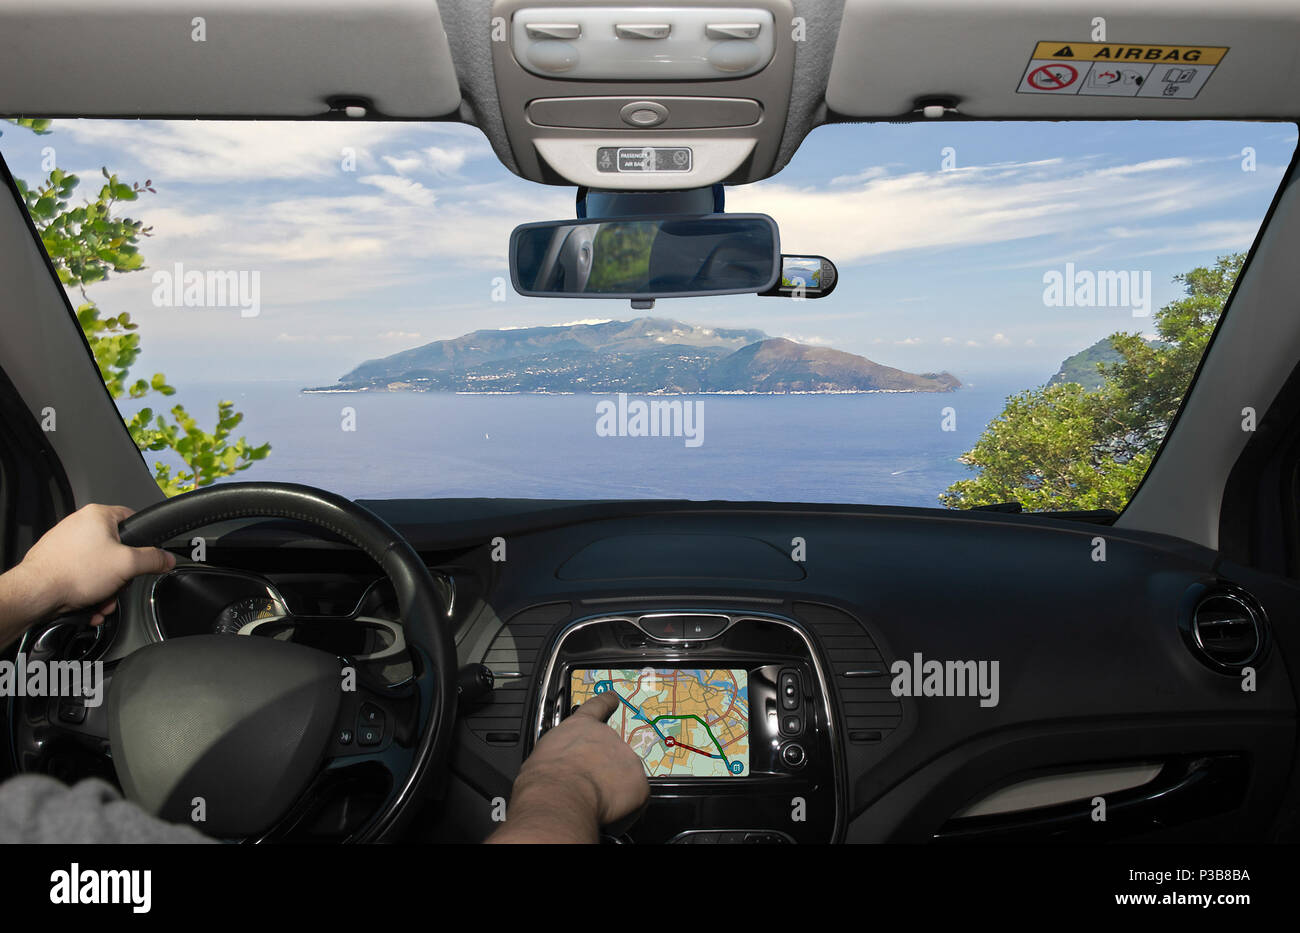 Driving a car while using the touch screen of a GPS navigation system towards Sorrento Peninsula, as seen from Capri, Bay of Naples, Italy - Stock Image